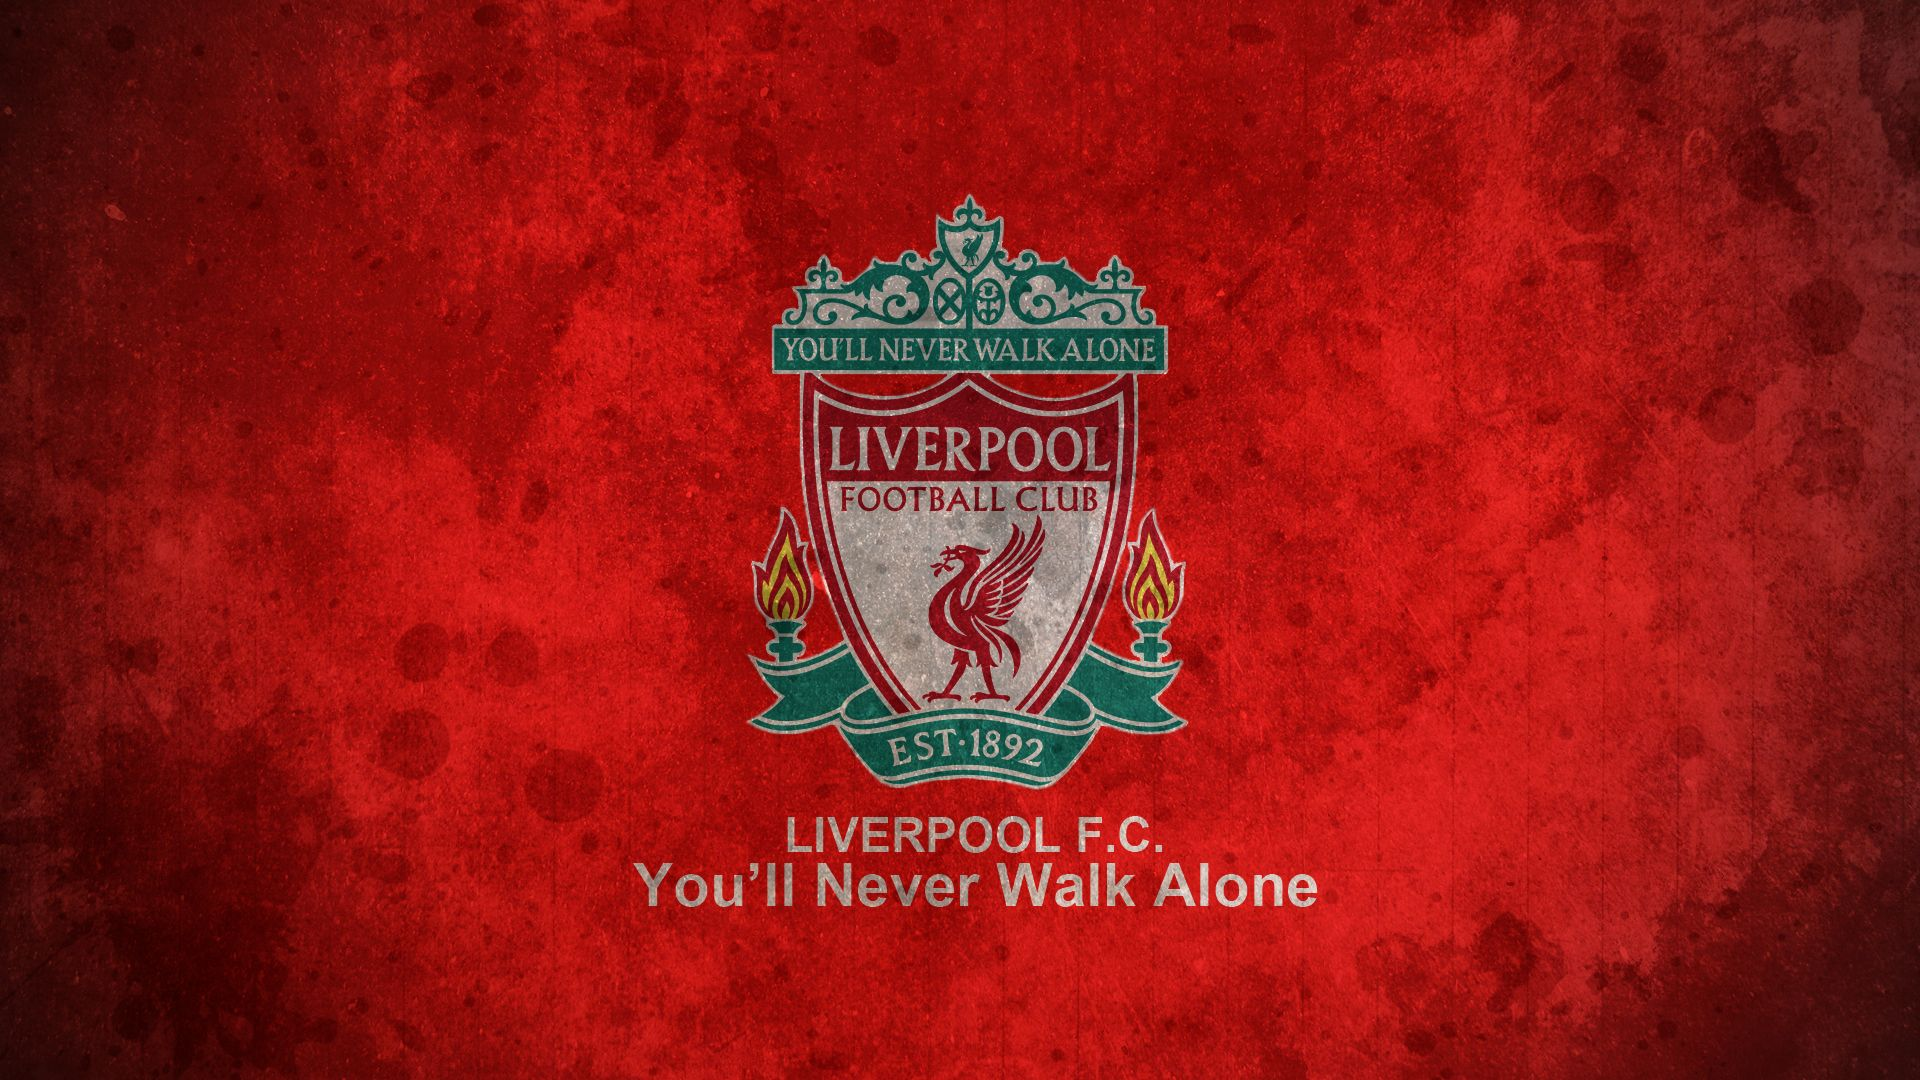 pin wallpaper liverpool awesome - photo #37